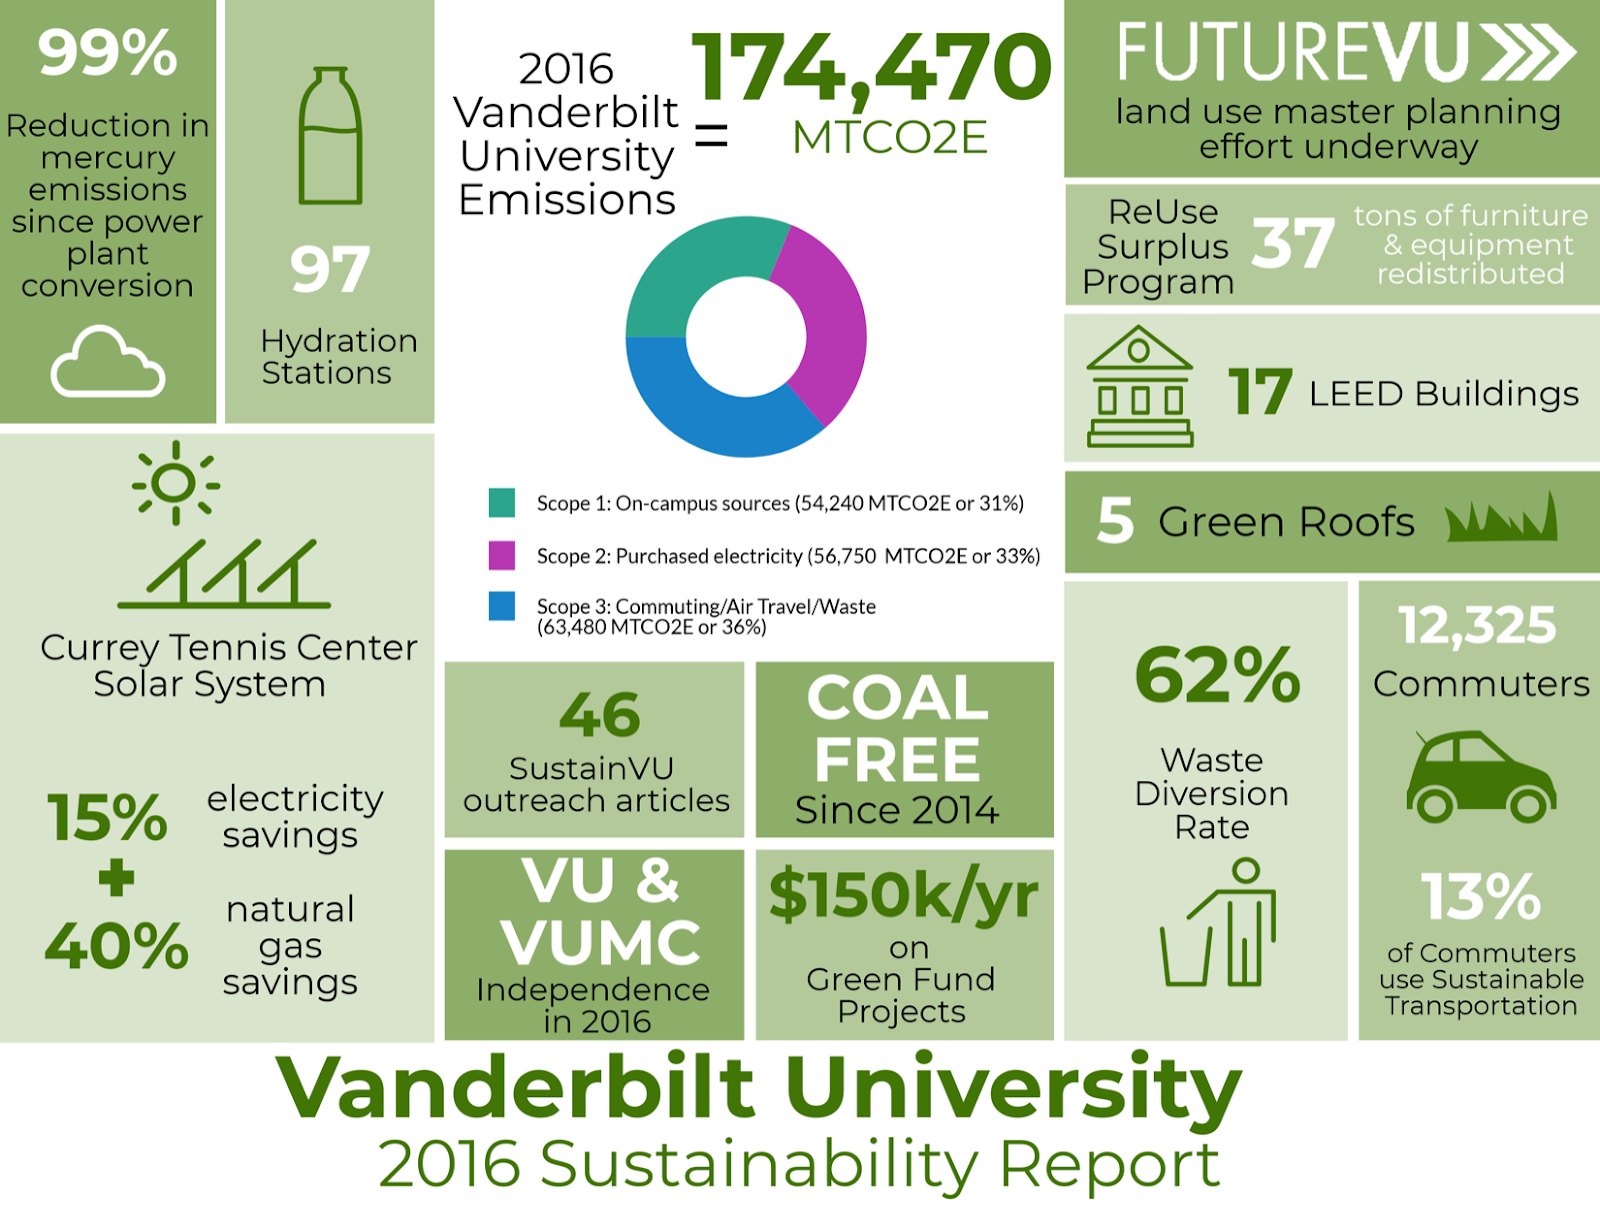 New sustainability report includes comprehensive data on university's environmental impact